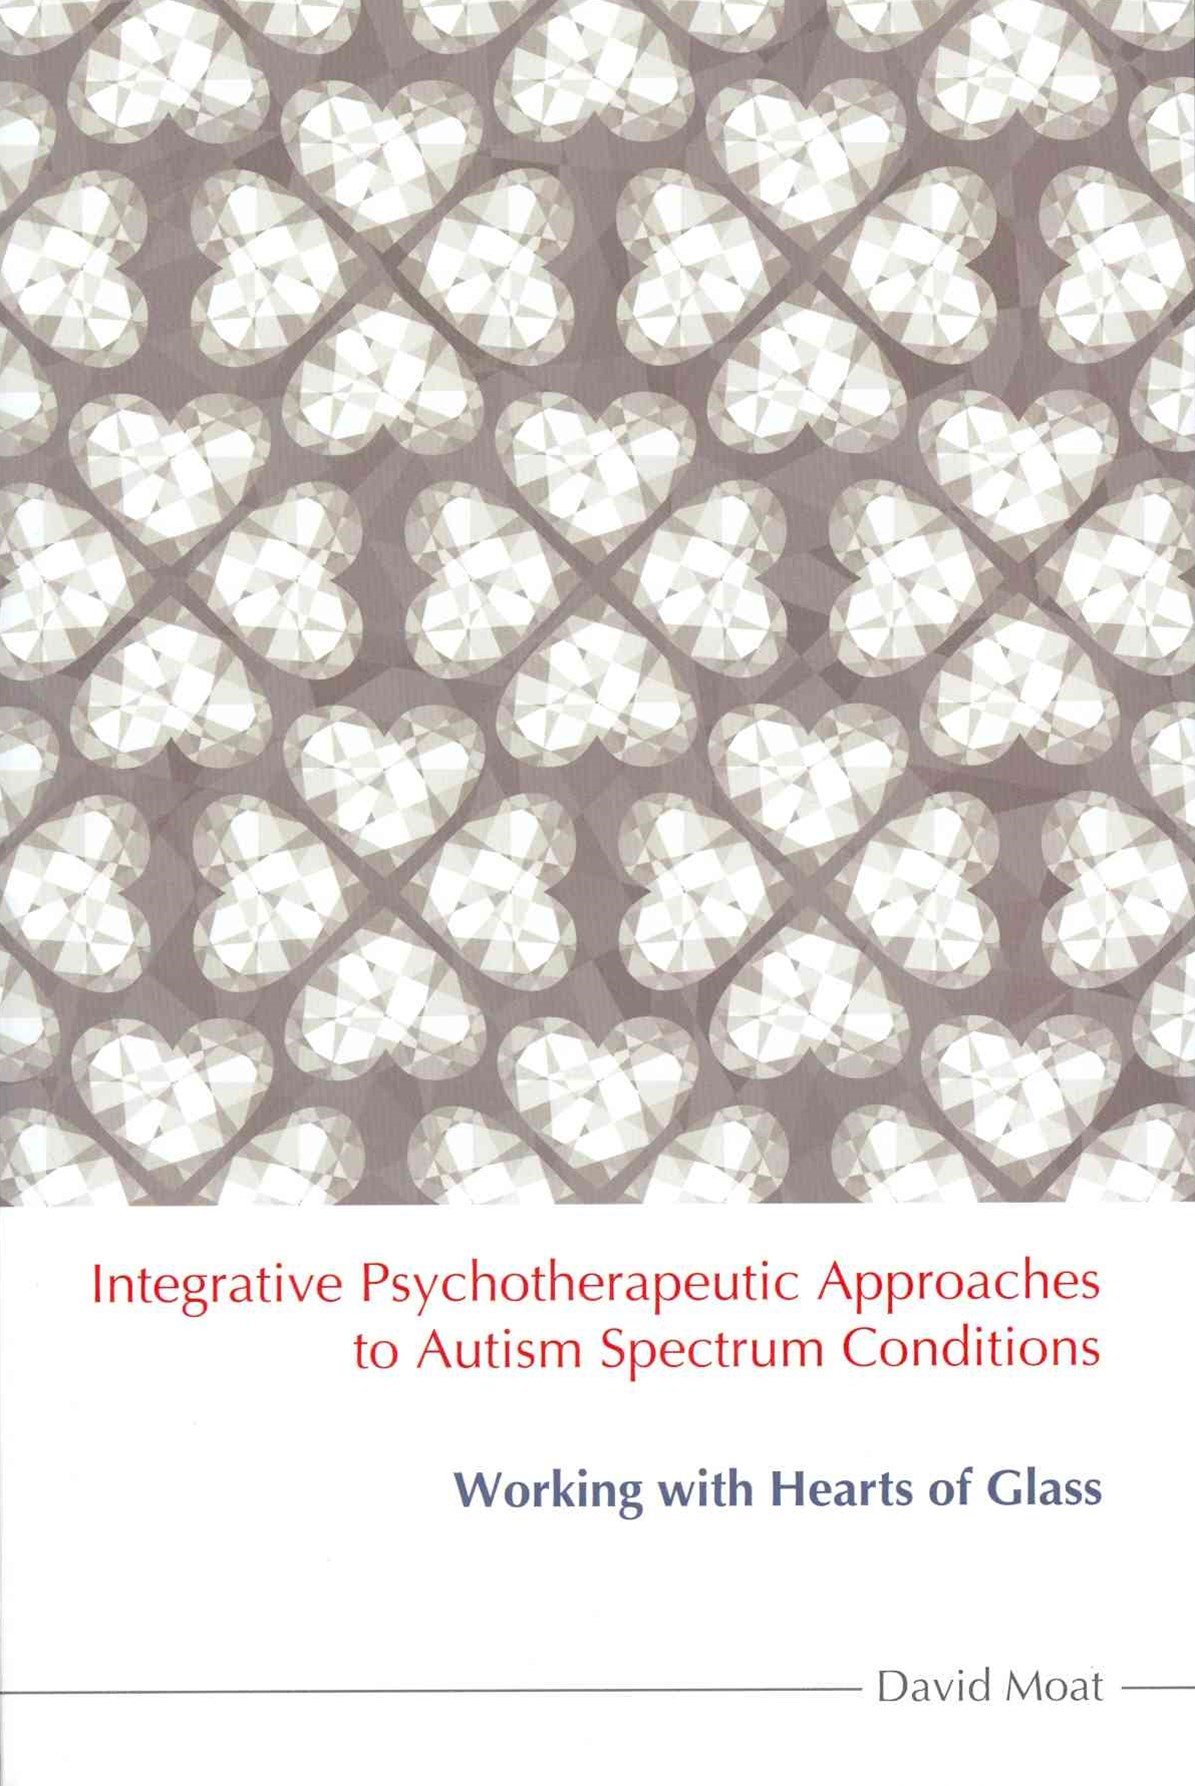 Integrative Psychotherapeutic Approaches to Autism Spectrum Conditions